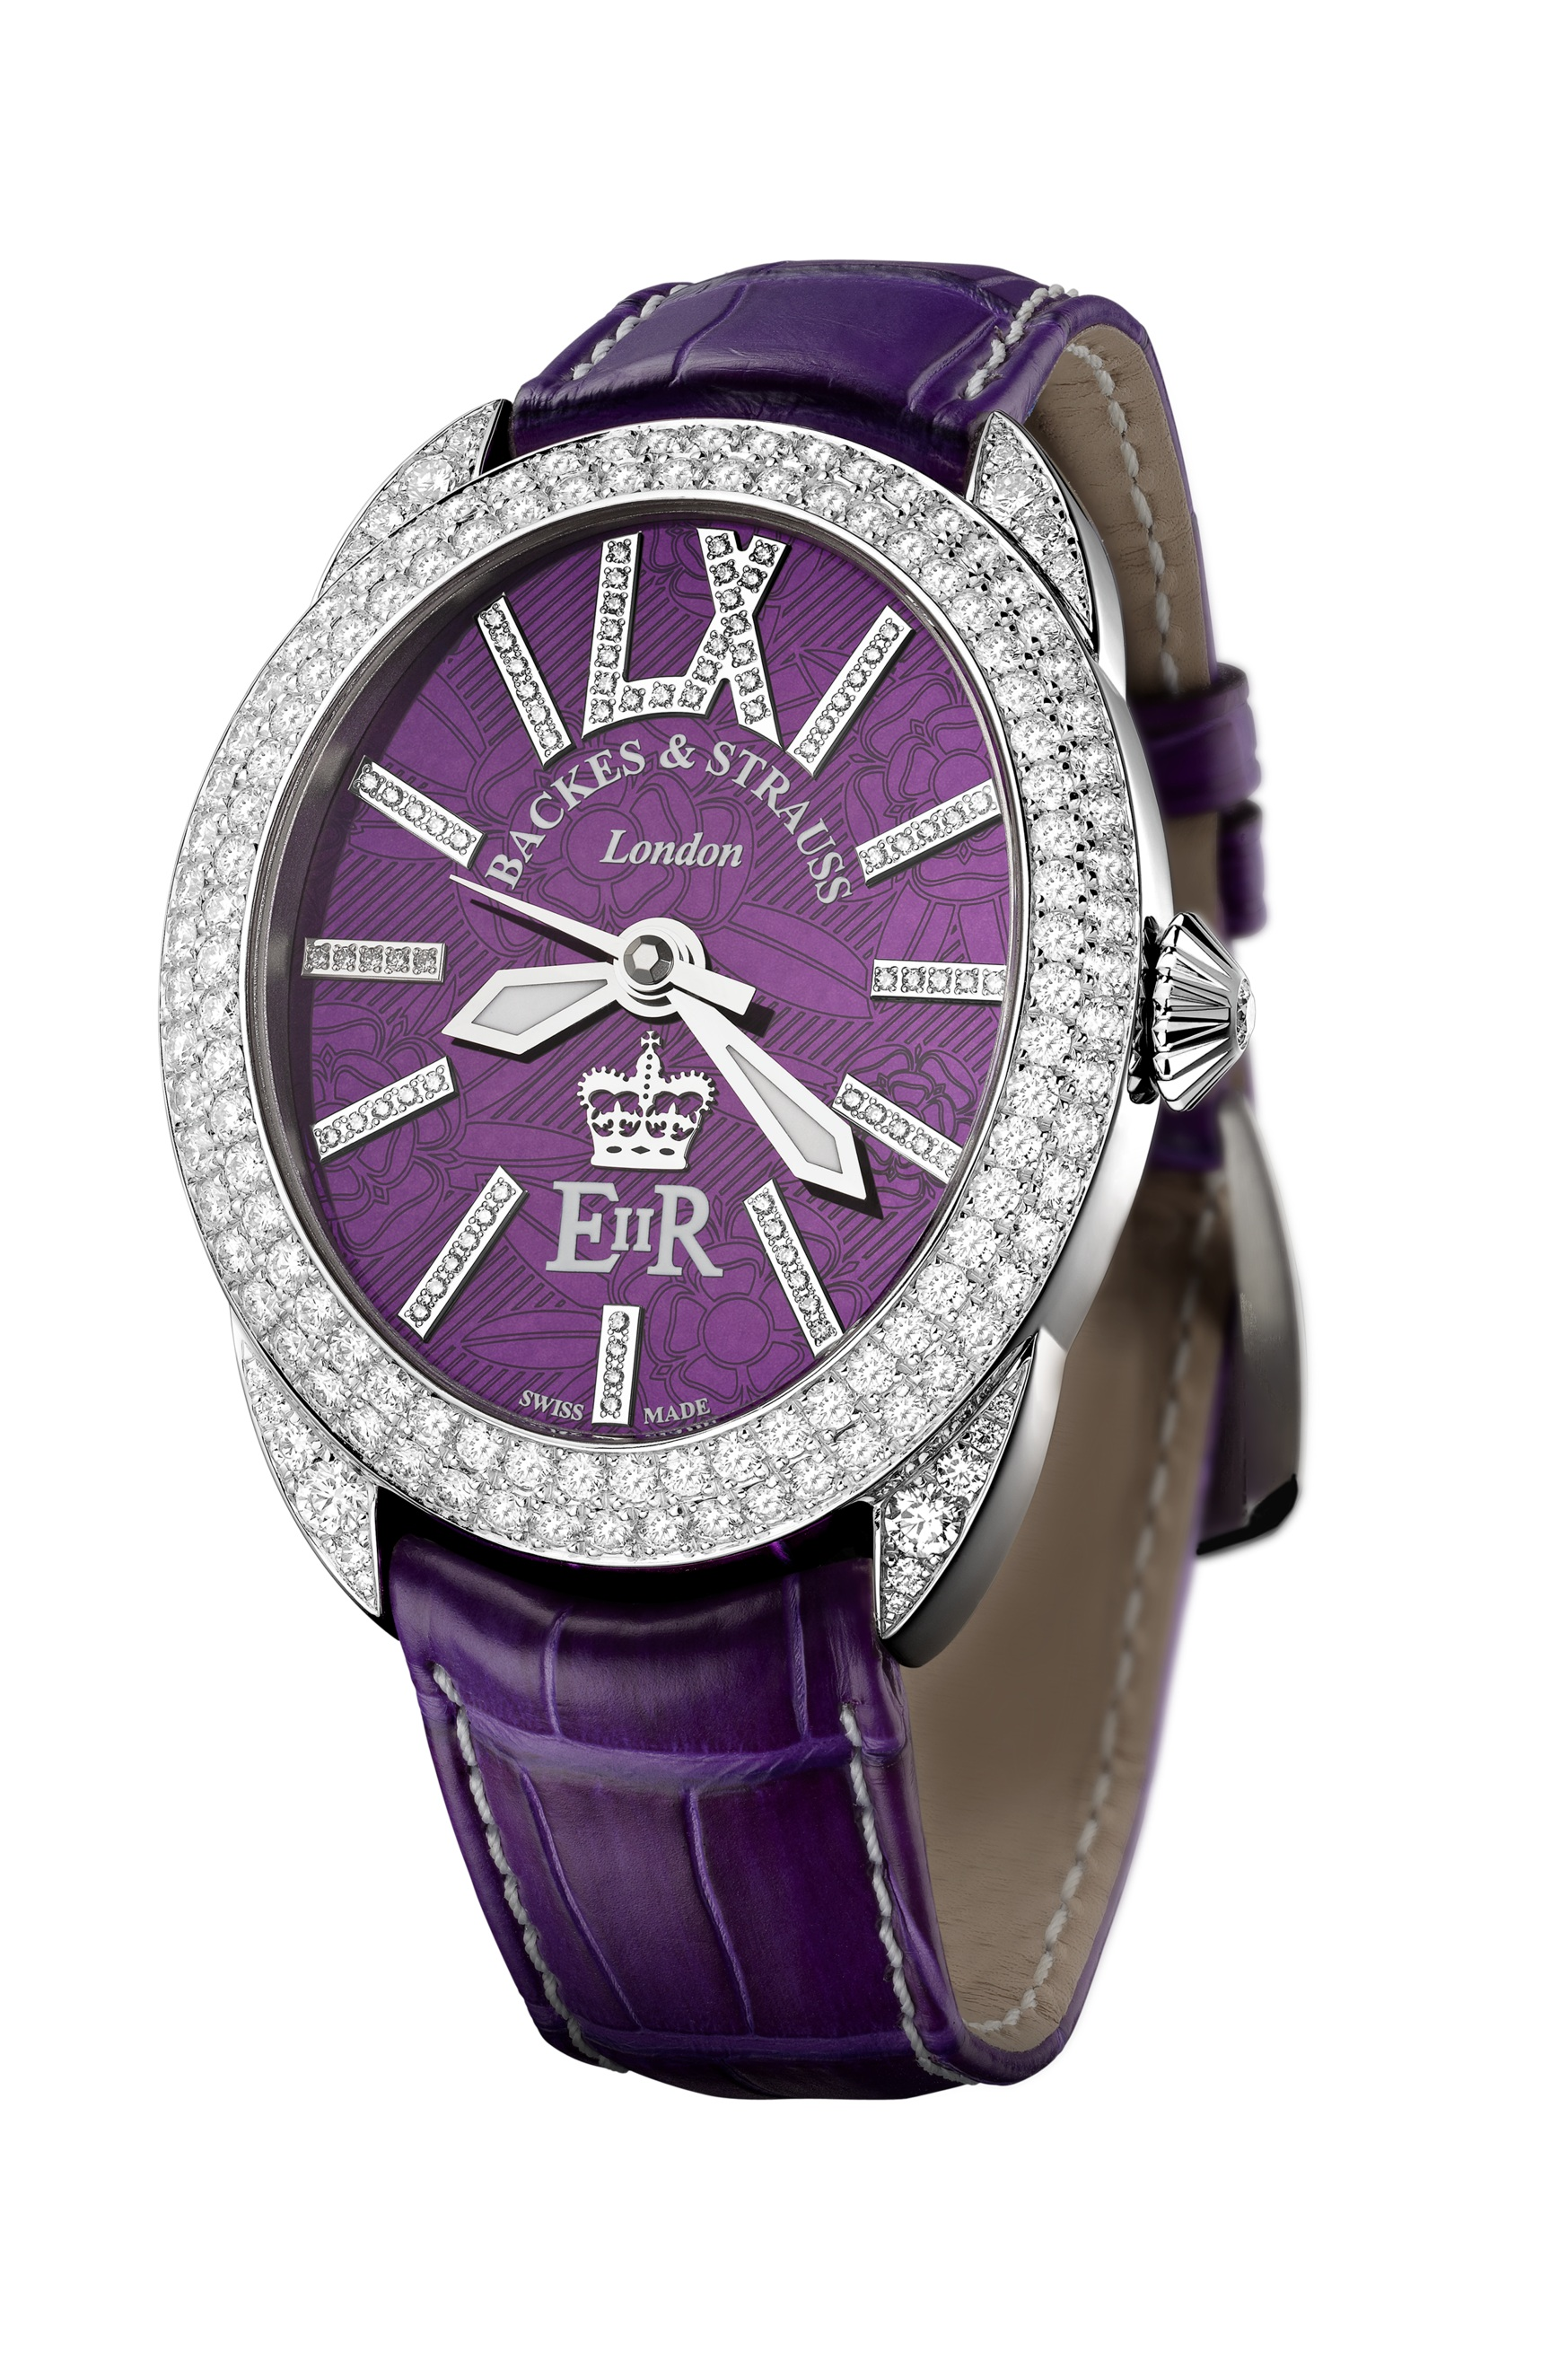 Regent Diamond Jubilee 4047 limited edition watch side-shot